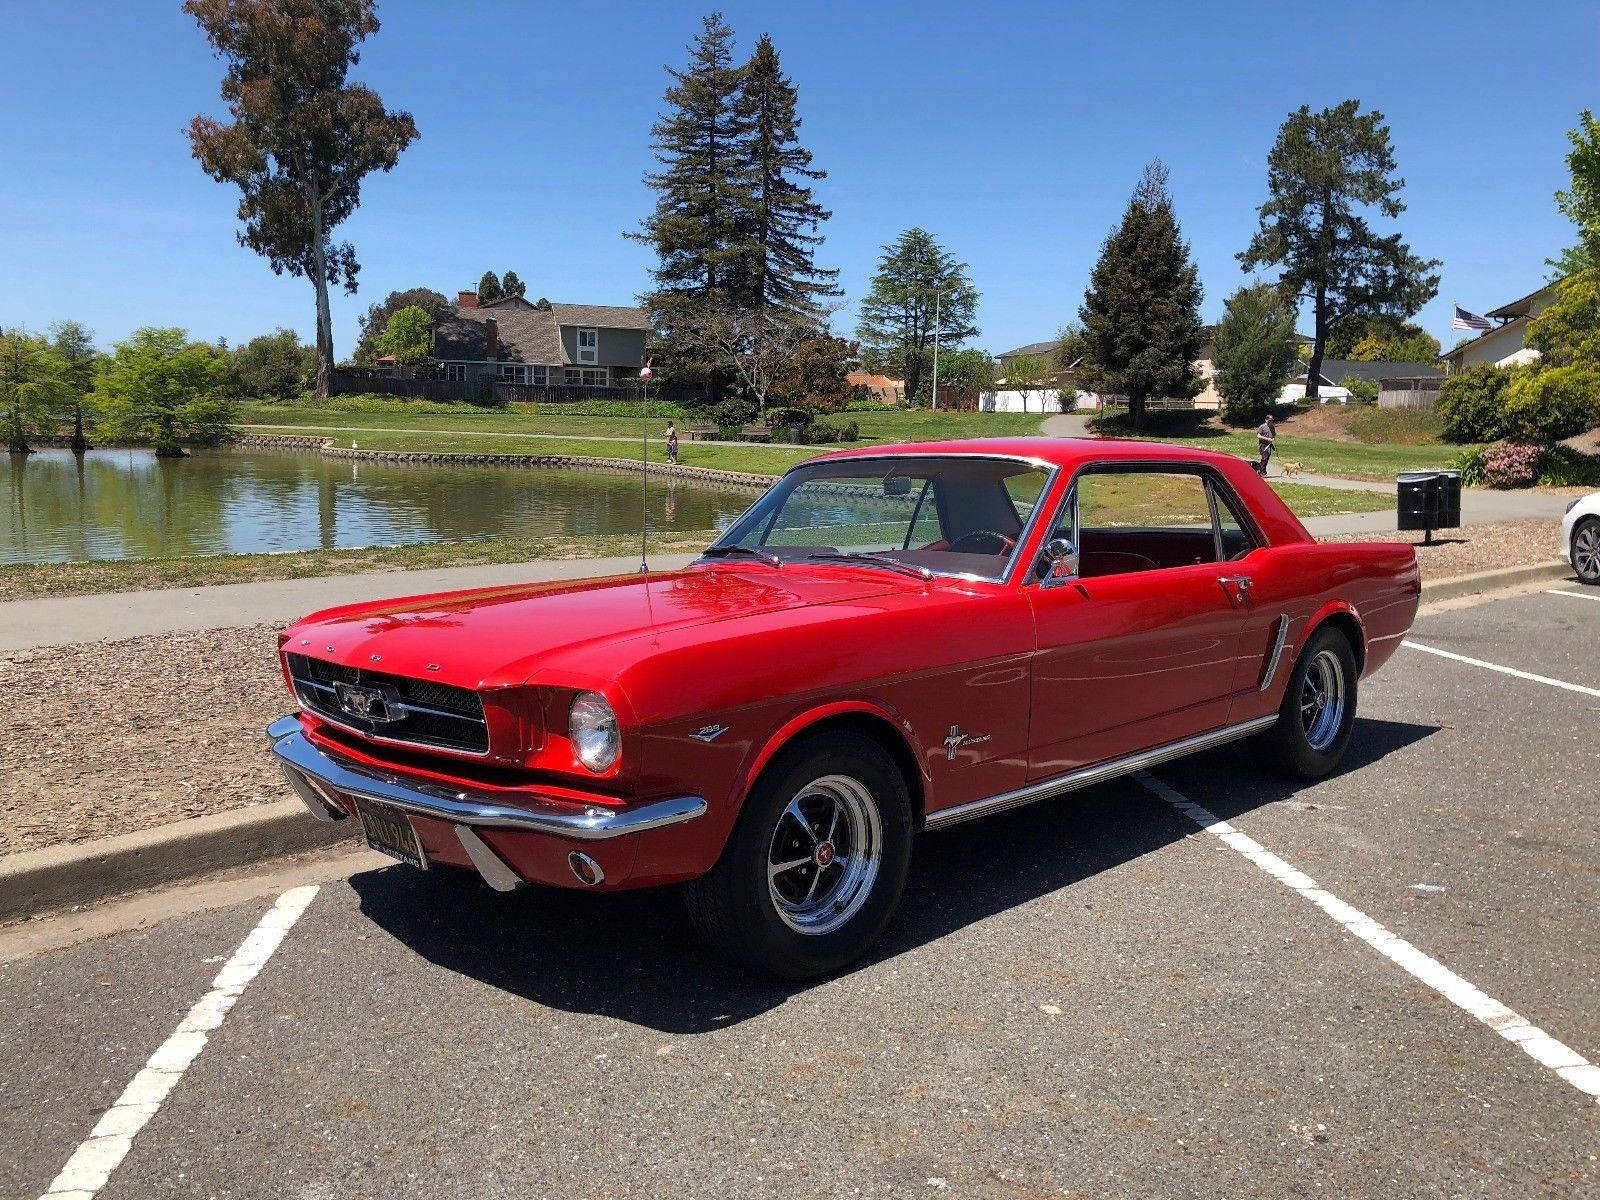 Amazing 1965 ford mustang 289 1964 1 2 ford mustang coupe rare 289 d code v8 nice ca car 2018 2019